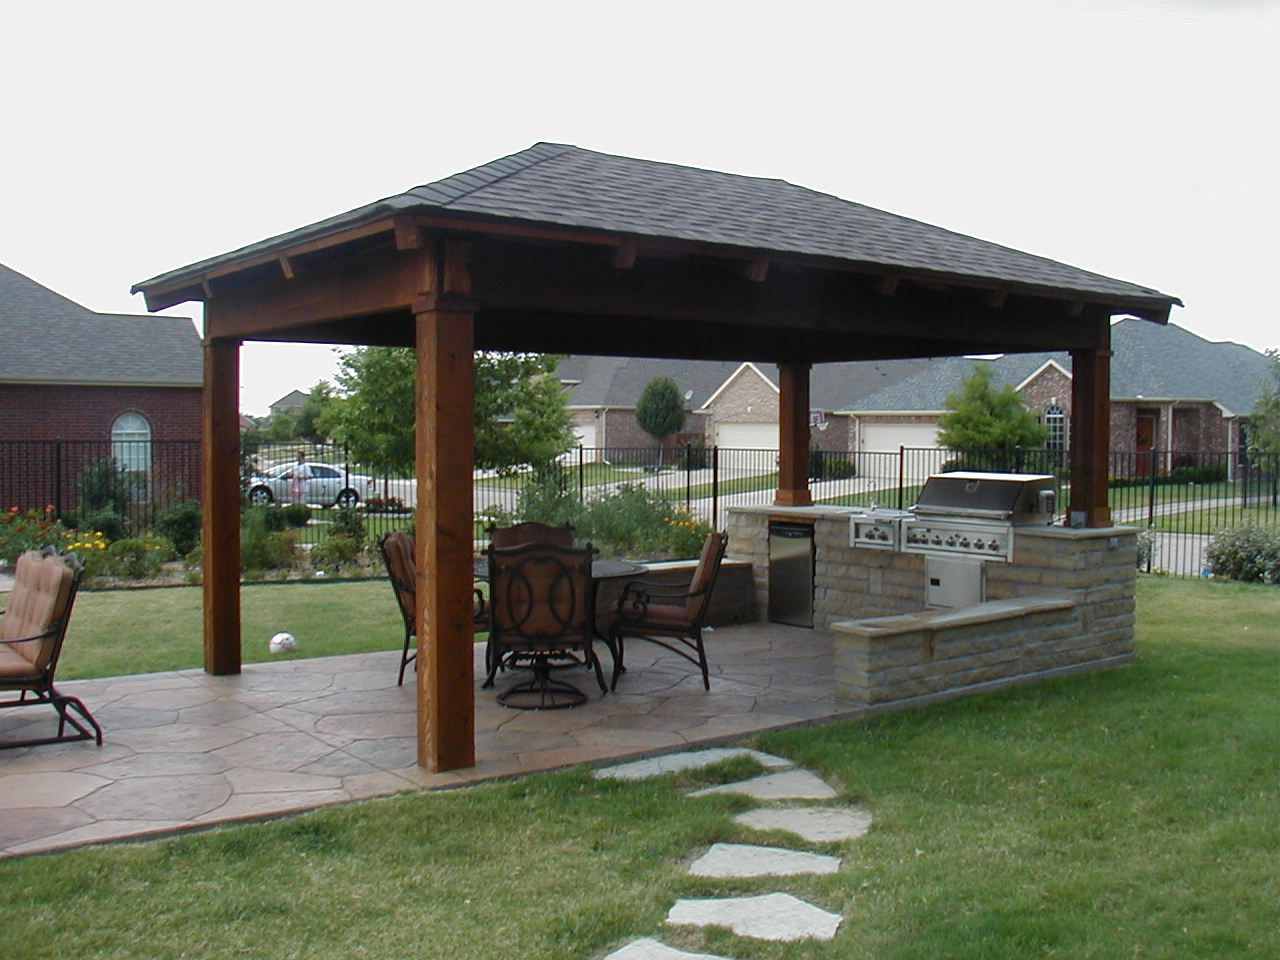 Attirant Painting Of Outdoor Pavilion Plans That Offer A Pleasant Relaxing Time At  Your Backyard